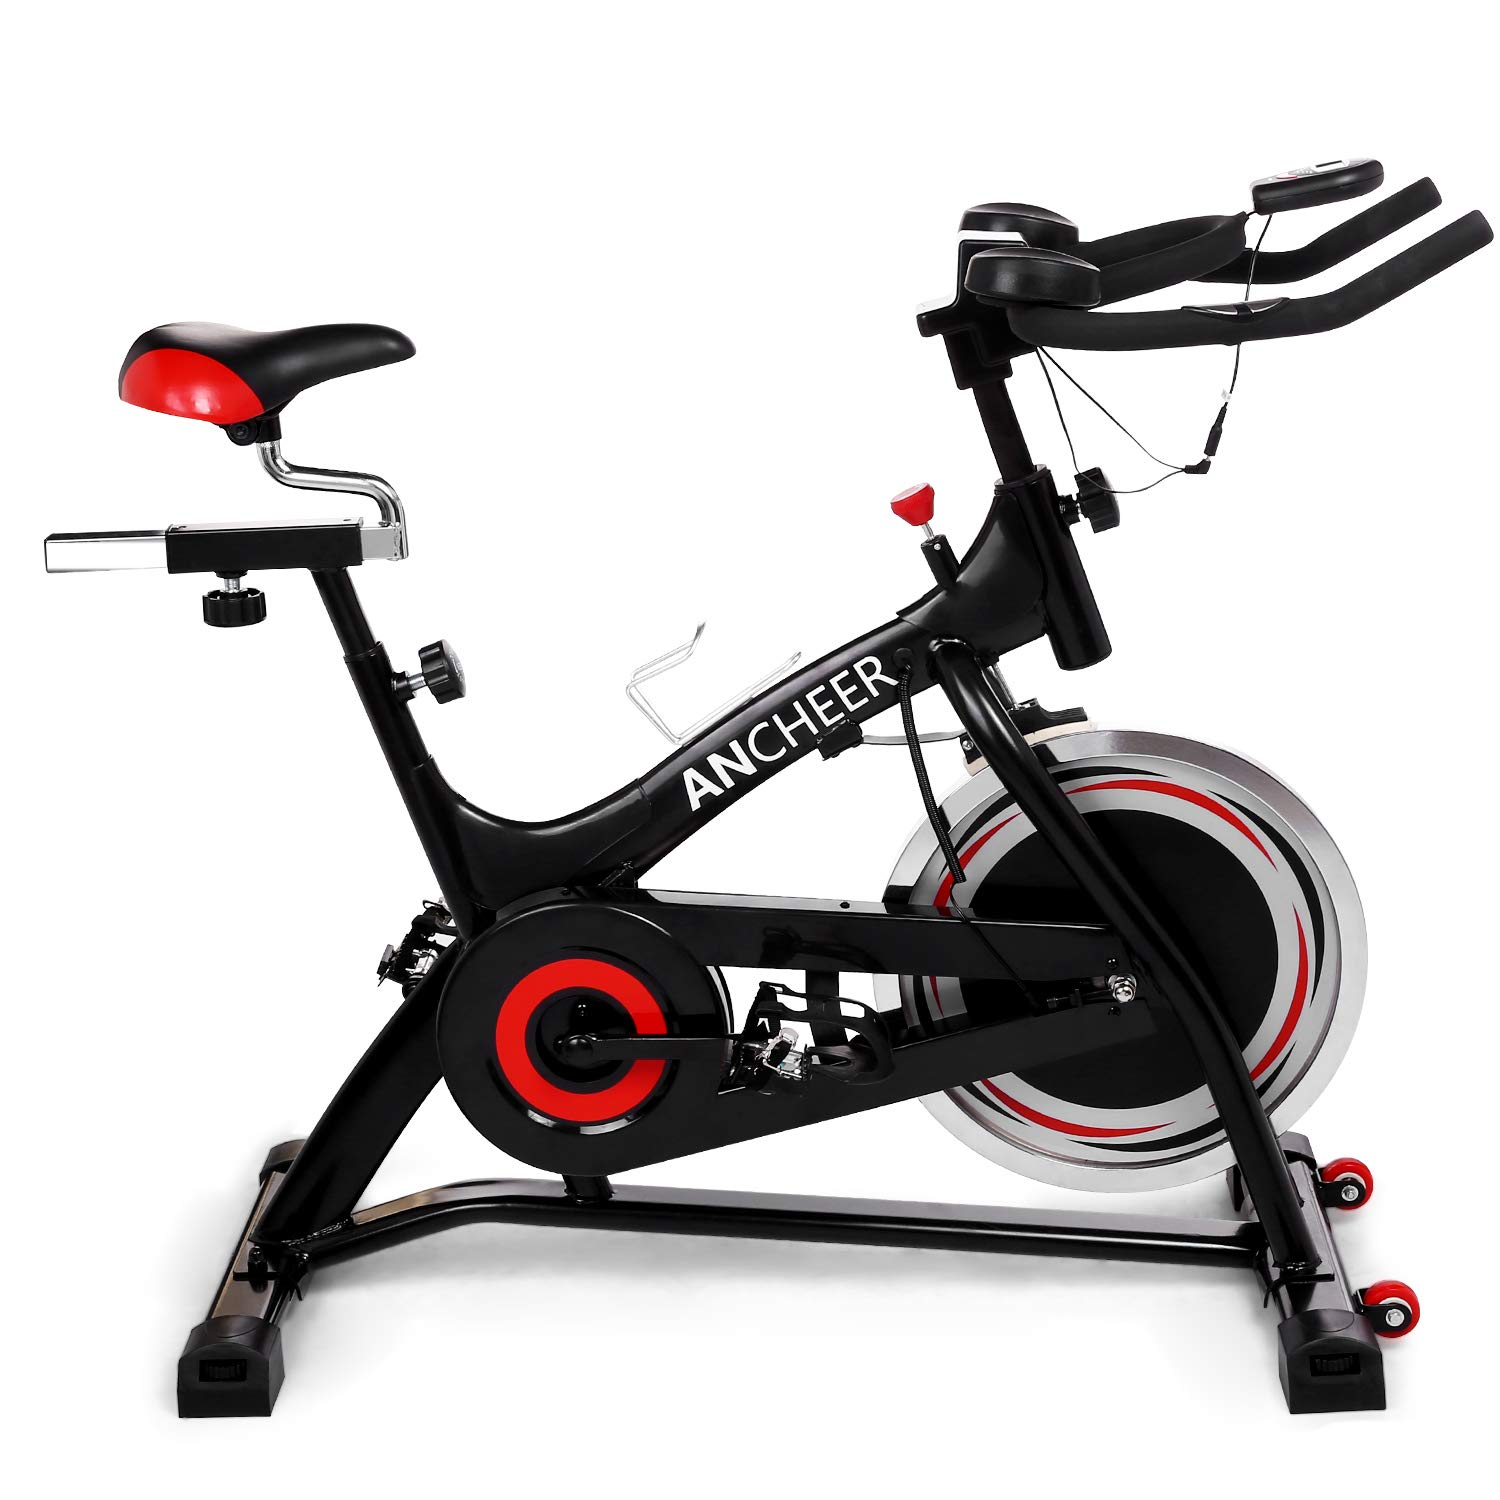 ANCHEER Indoor Cycling Exercise Bike